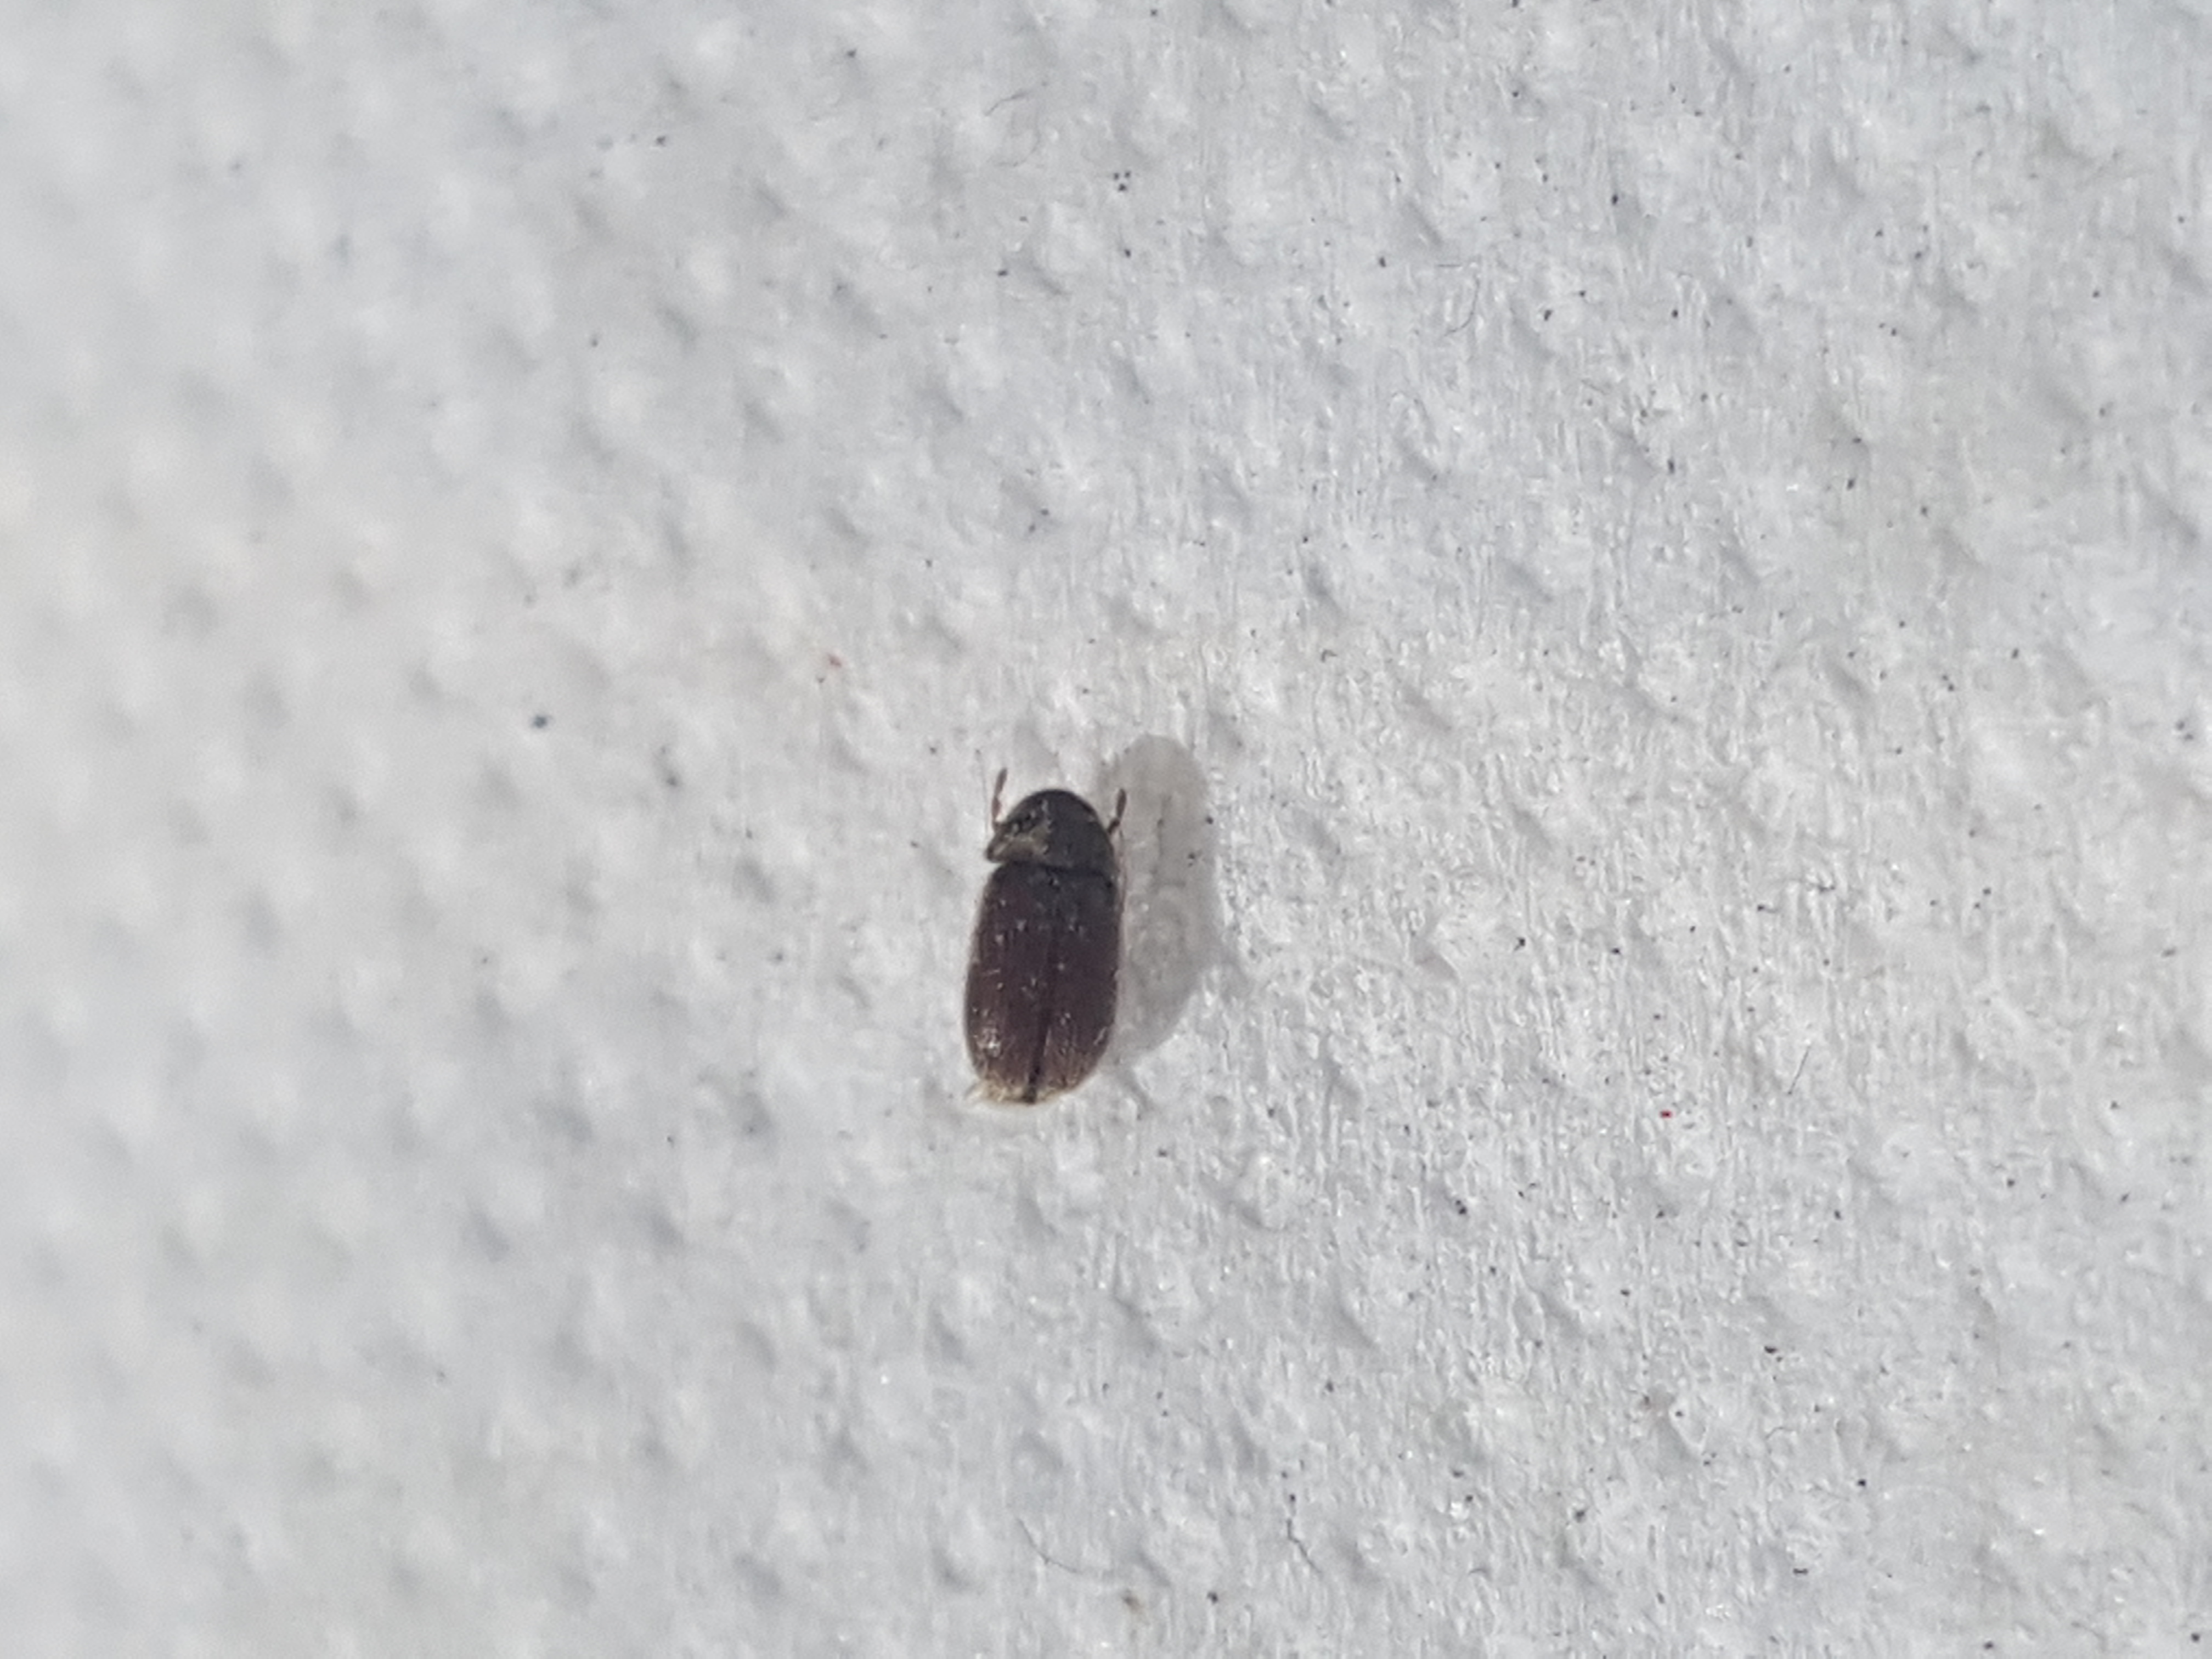 Small Black Flying Bugs On Window